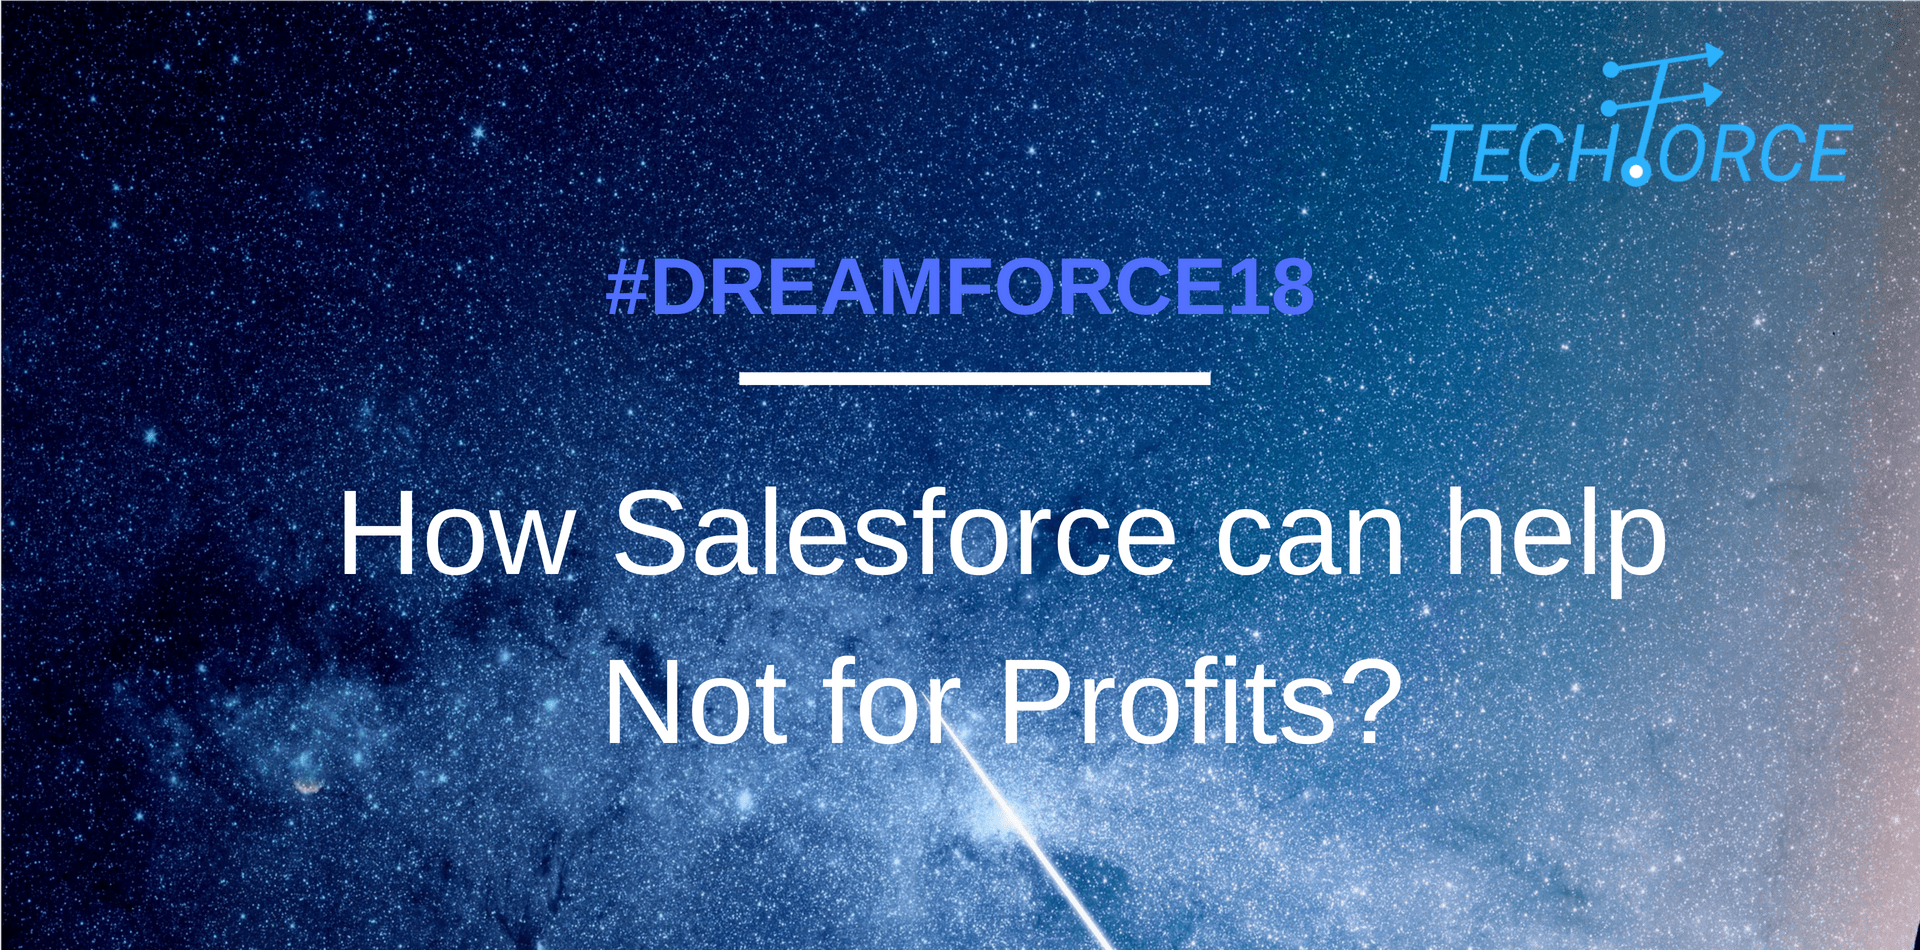 Techforce Services Blog - Salesforce for Not for Profits